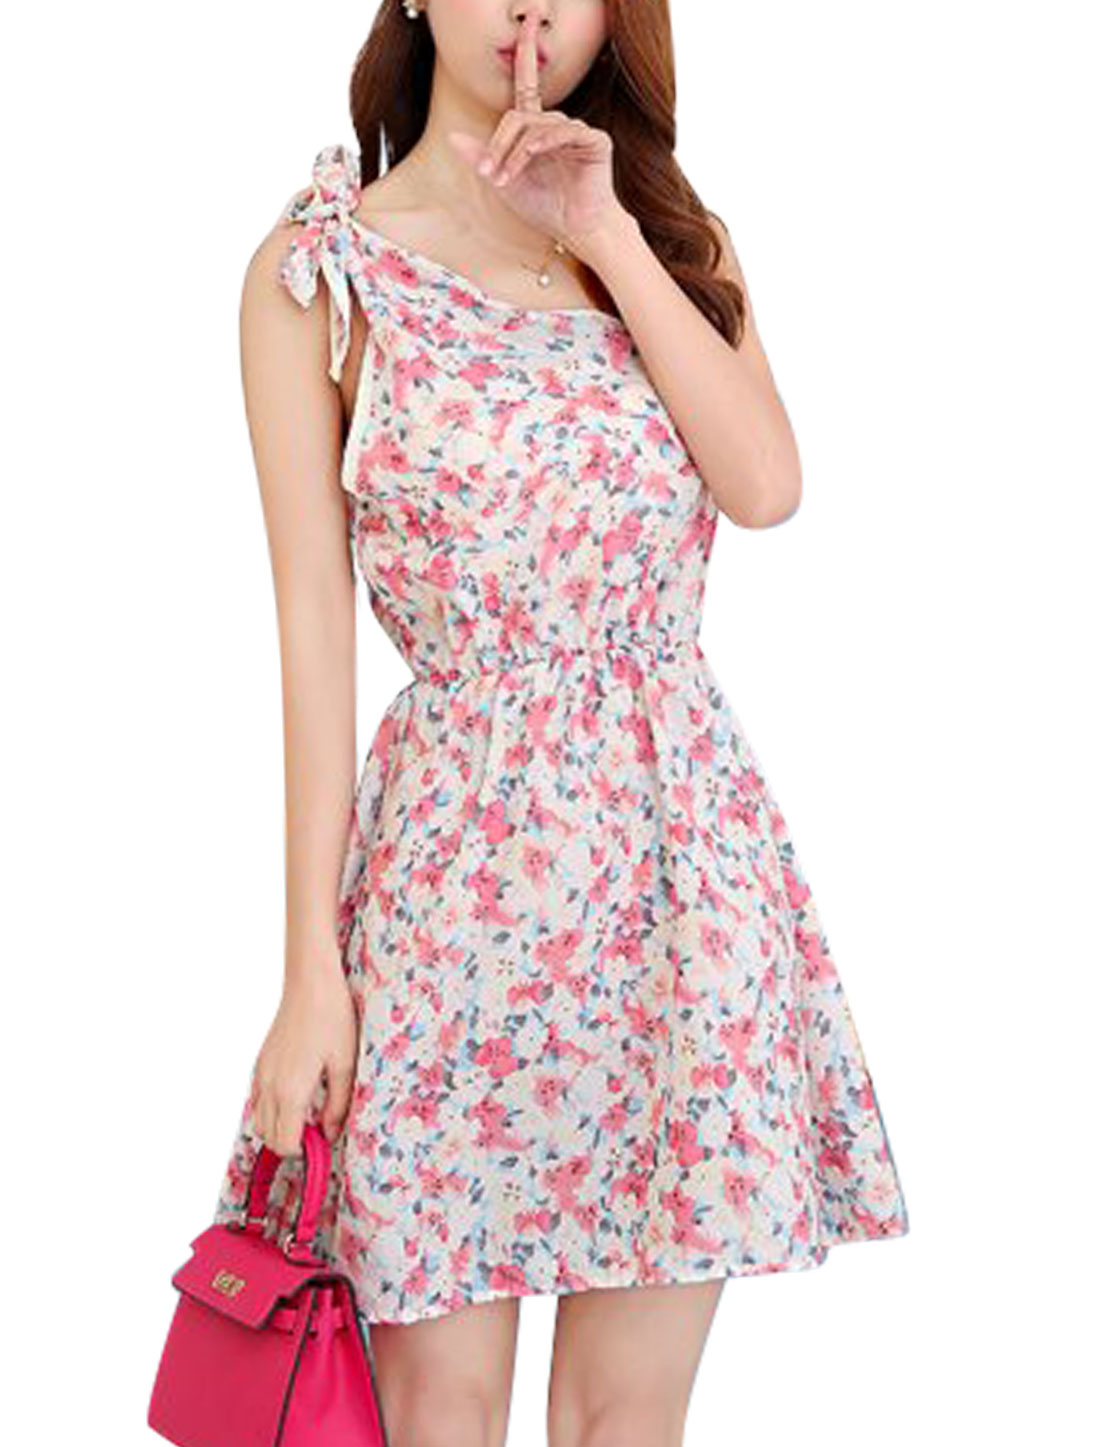 Women Floral Pattern One Shoulder Casual Dress Pale Pink Beige XS